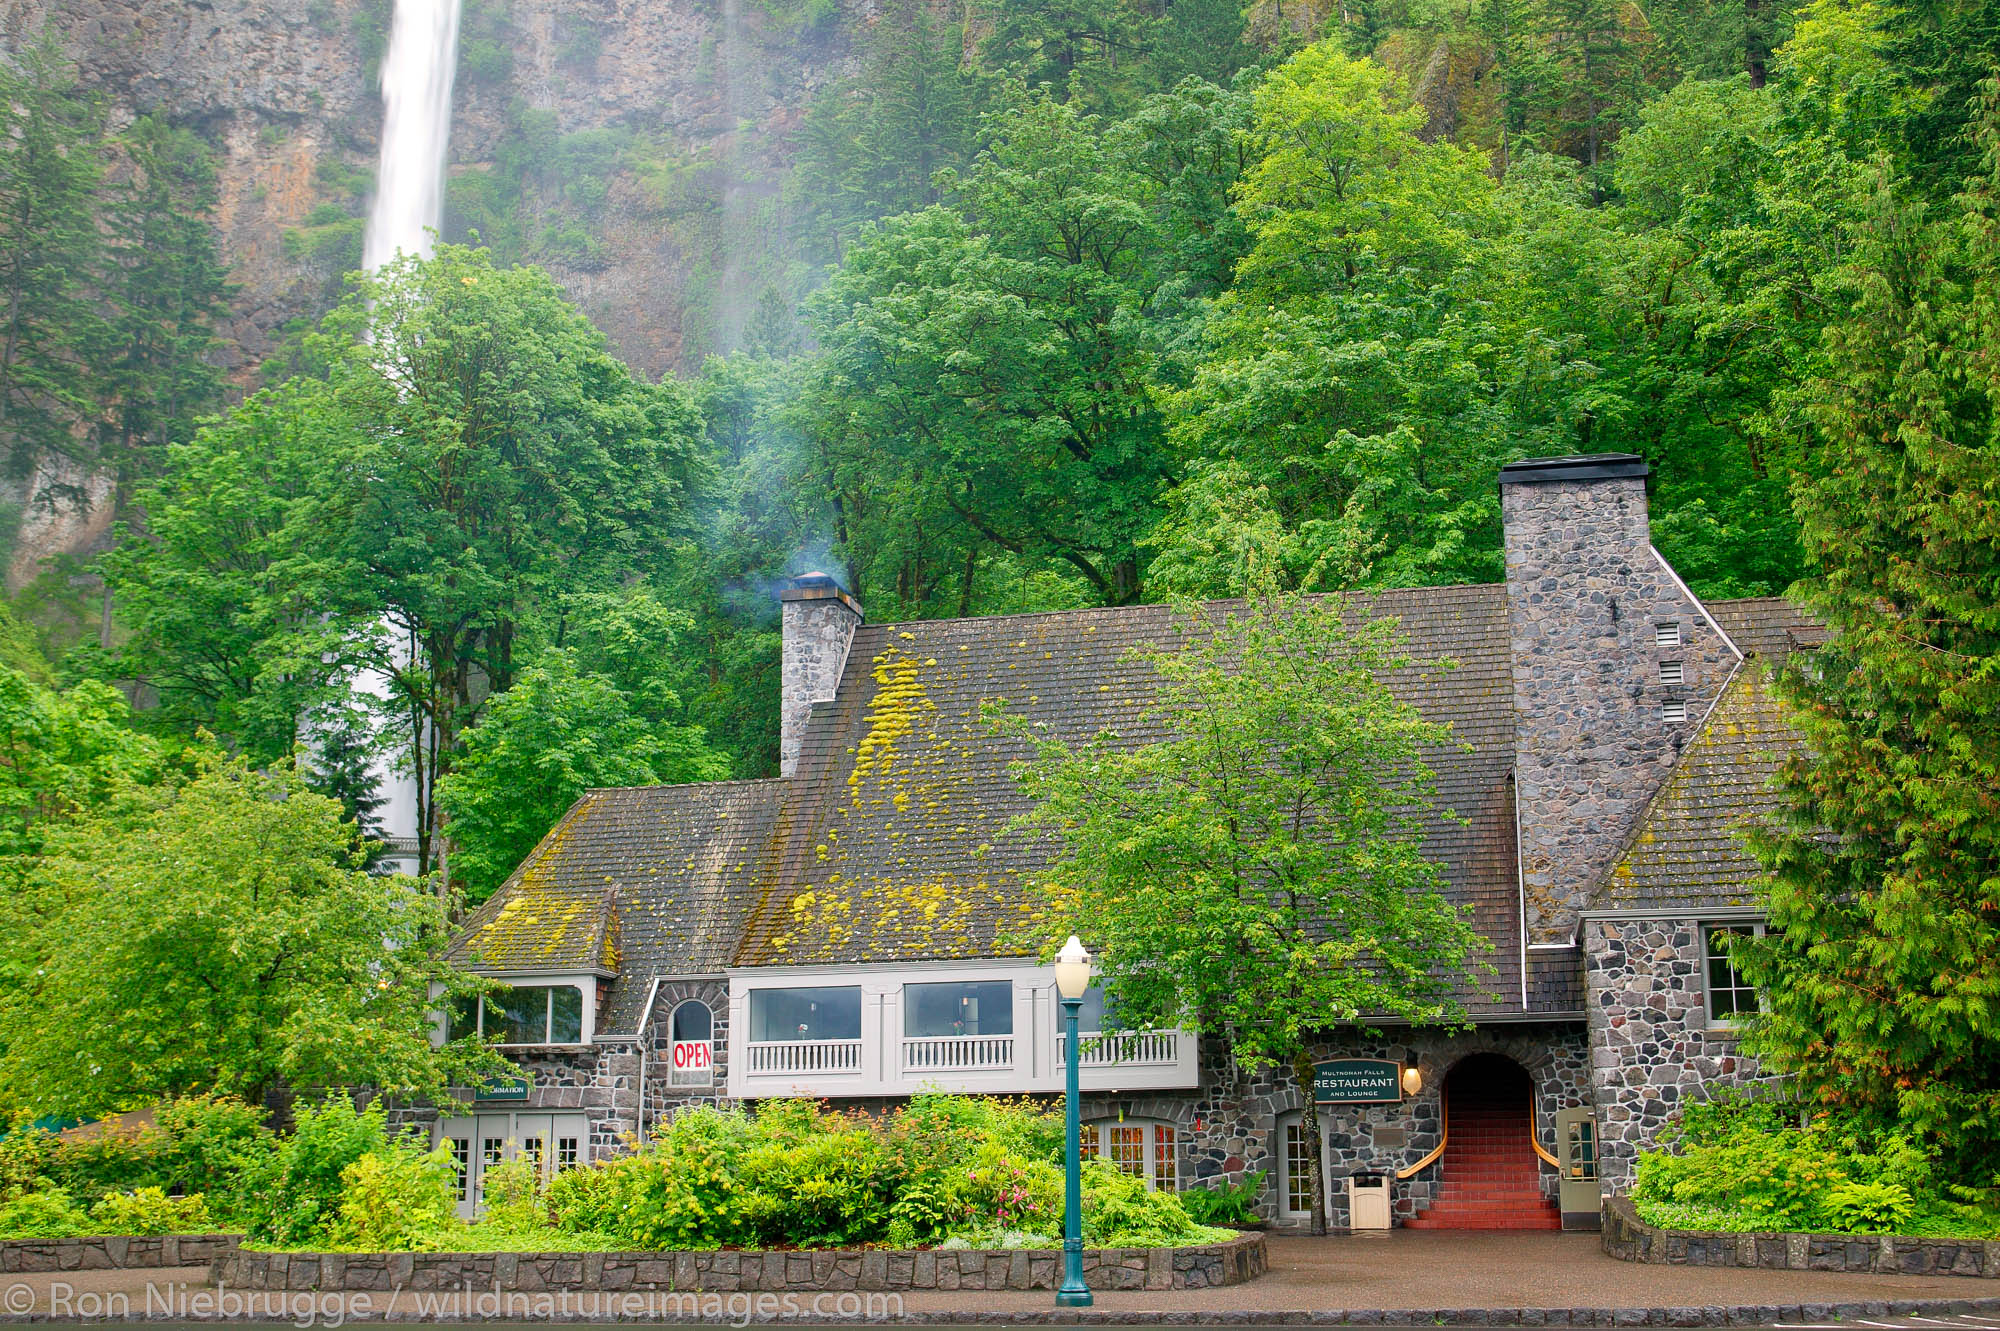 The Multnomah Falls Lodge and U.S. Forest Service Information Center at the Multnomah Falls, Columbia River Gorge National Scenic...